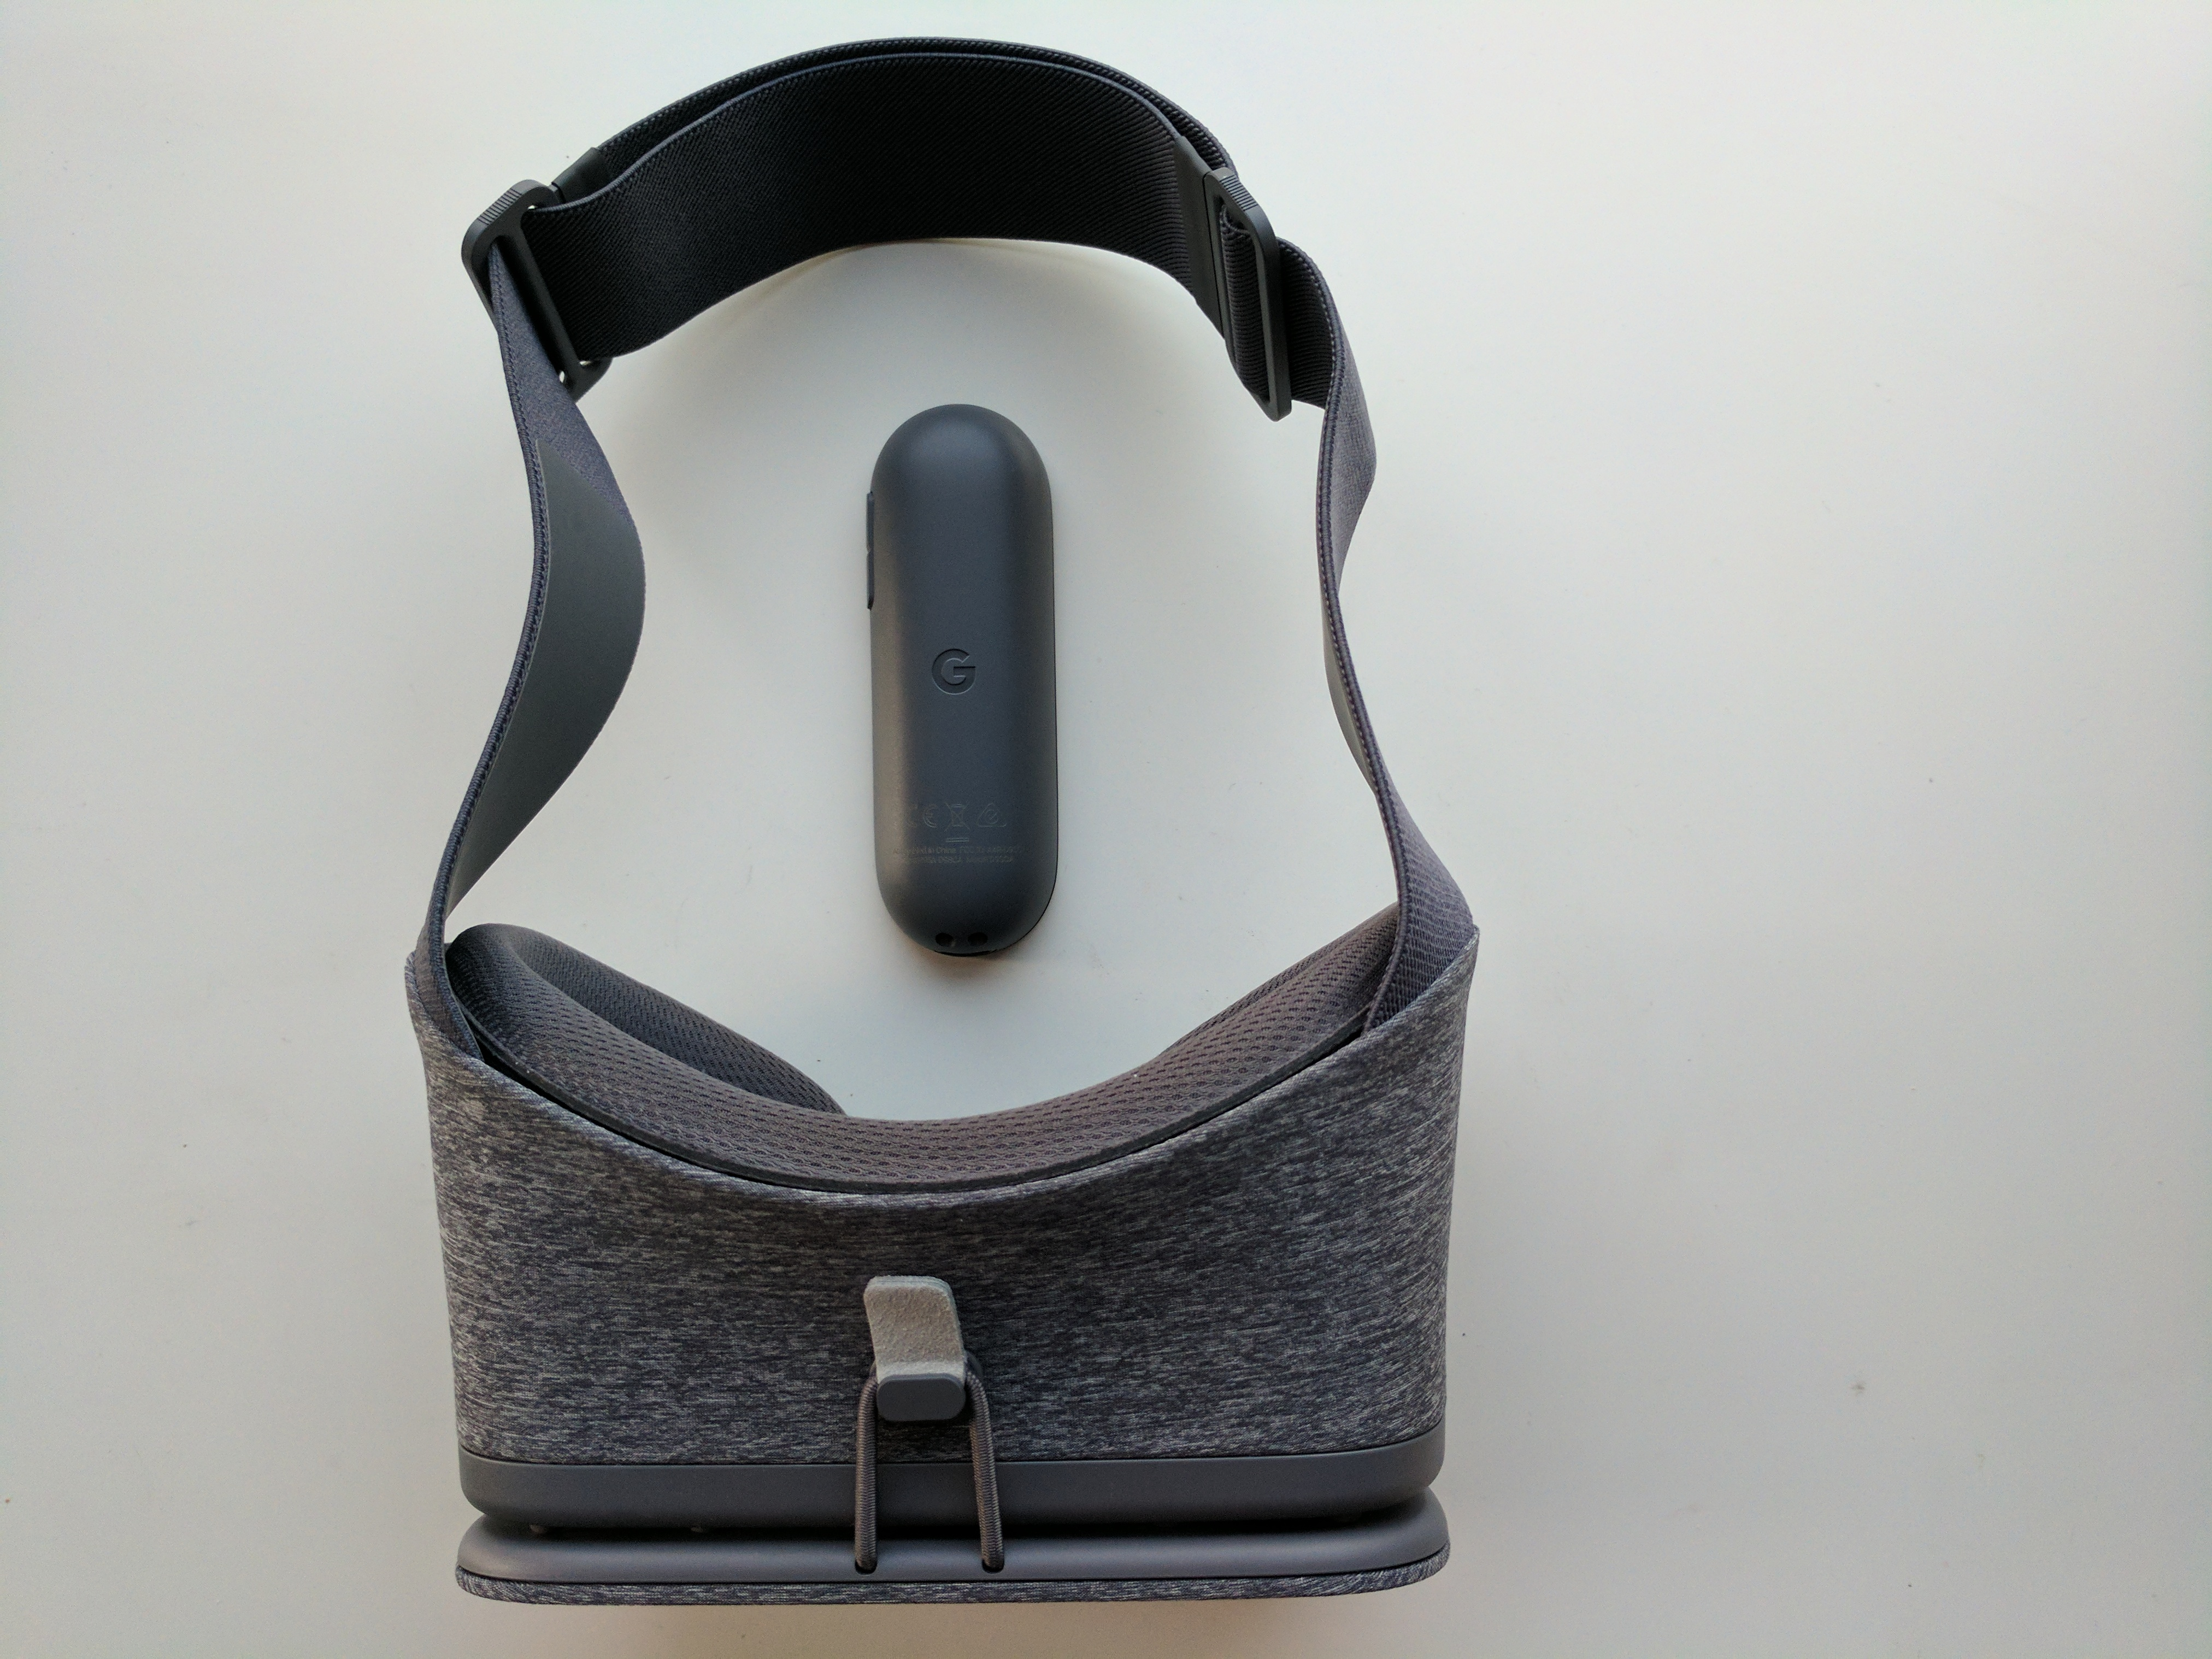 Google Daydream View from above.